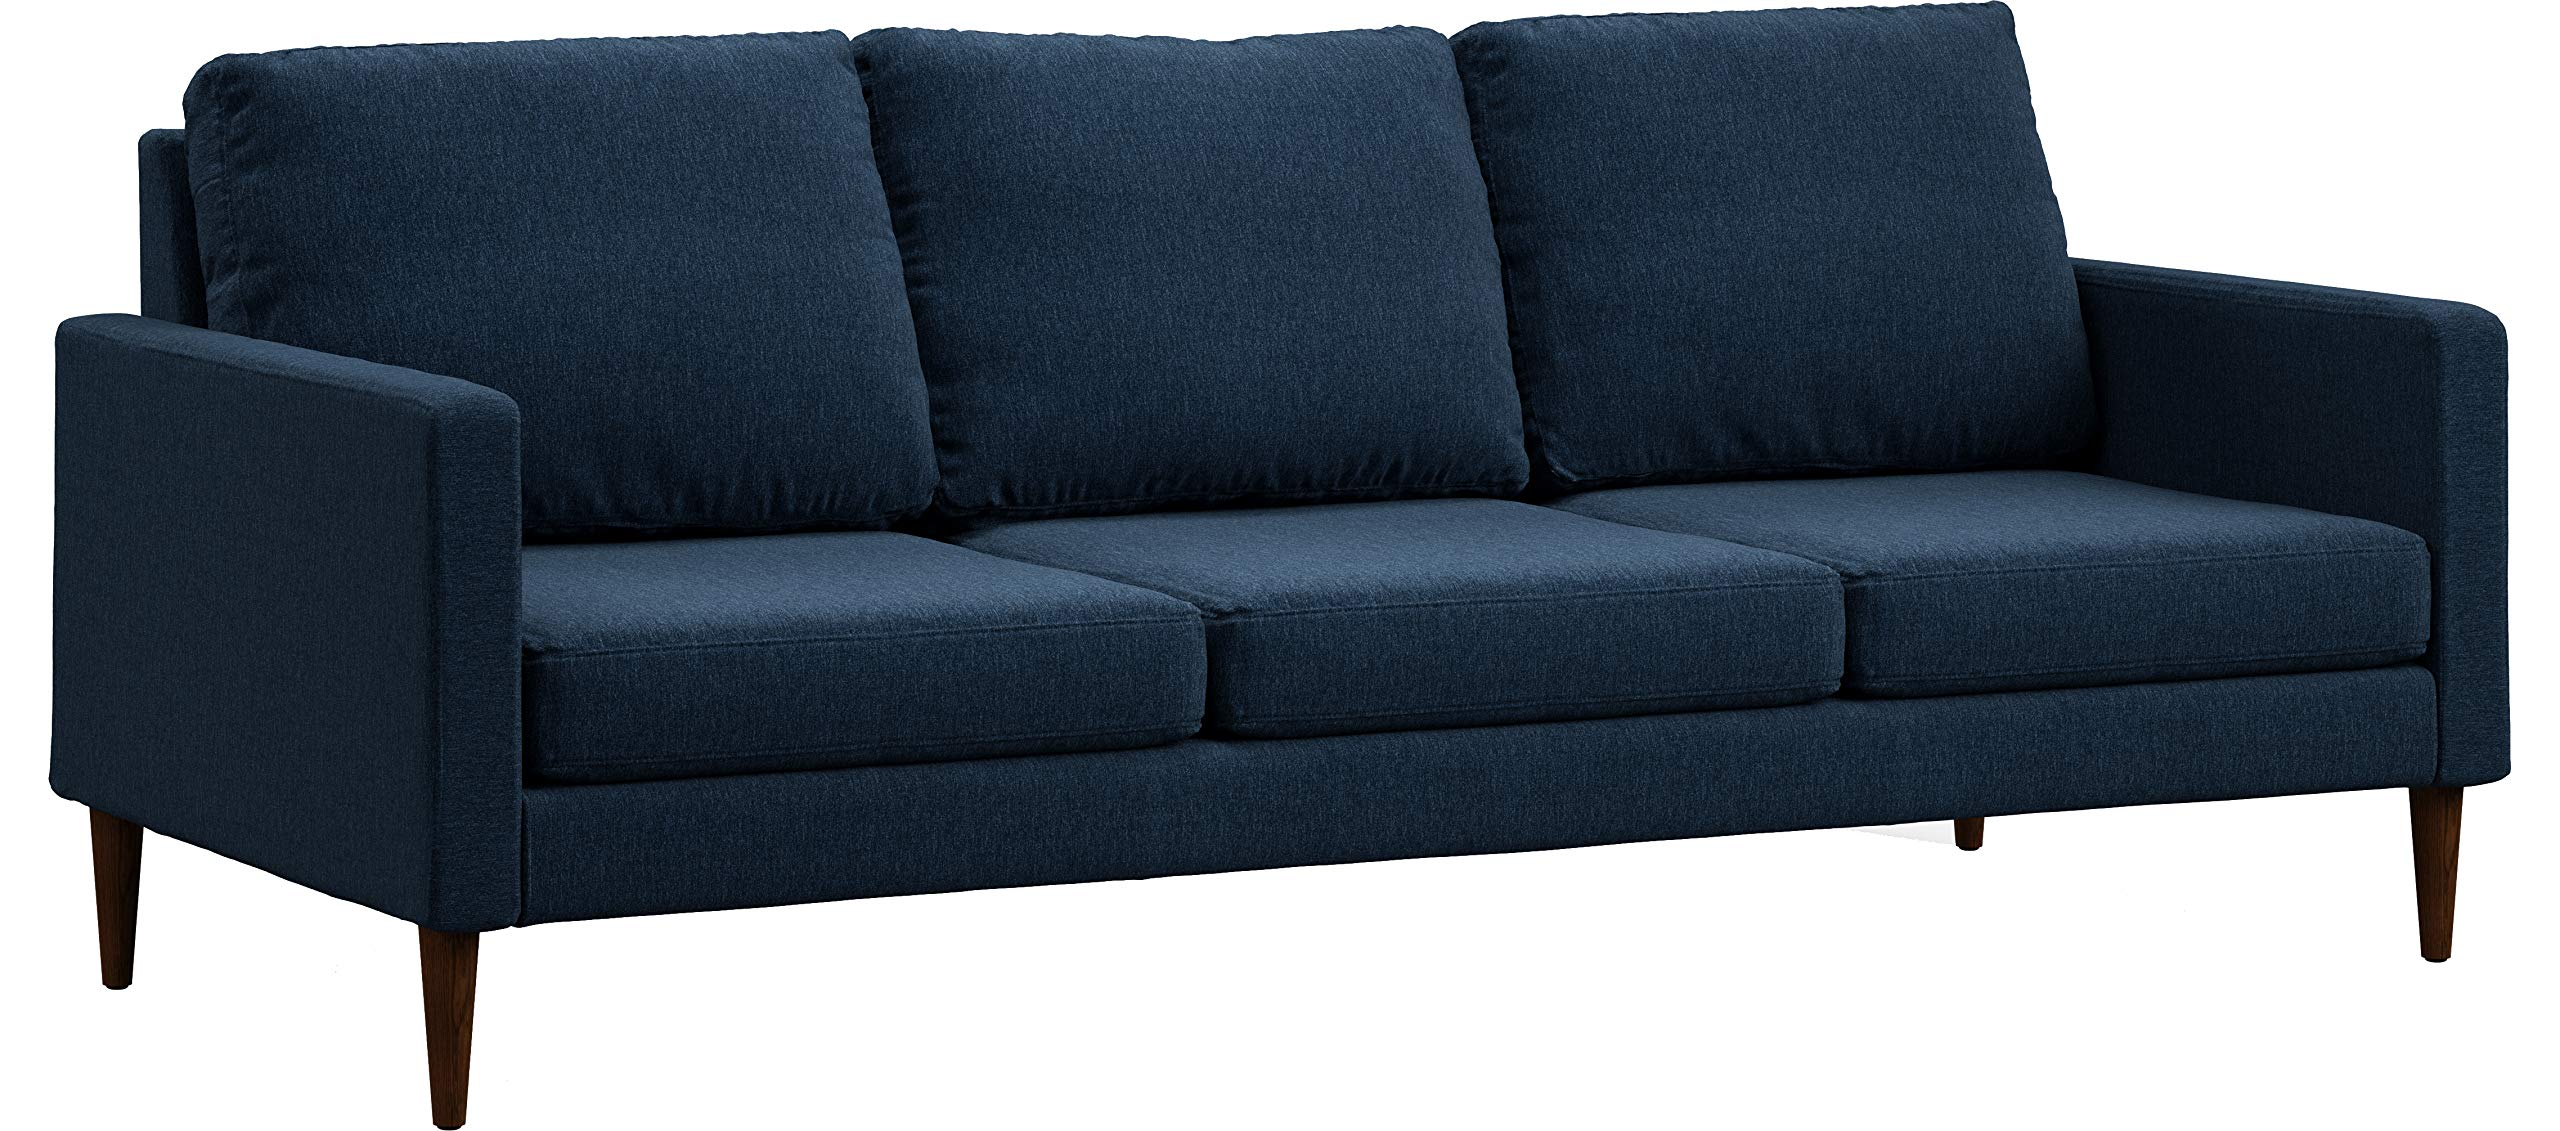 Campaign 86-Inch Steel Frame Brushed Weave Sofa, Midnight Navy with Mahogany Stained Solid Oak Legs by Campaign